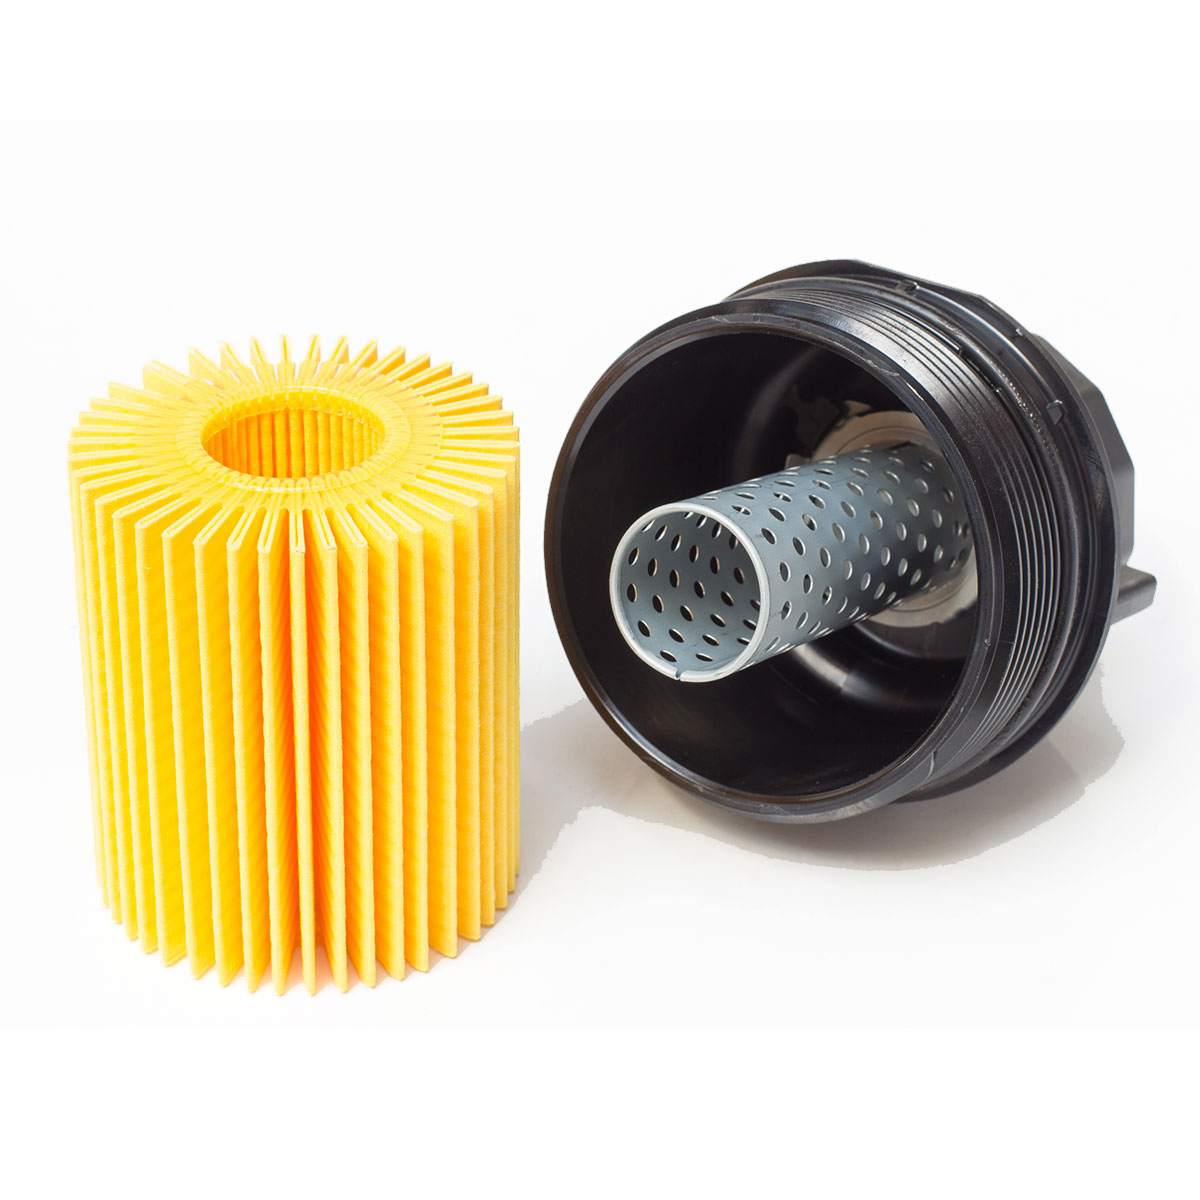 Terrific Oil Filter Housing Replacement Costs Repairs Autoguru Wiring Cloud Peadfoxcilixyz